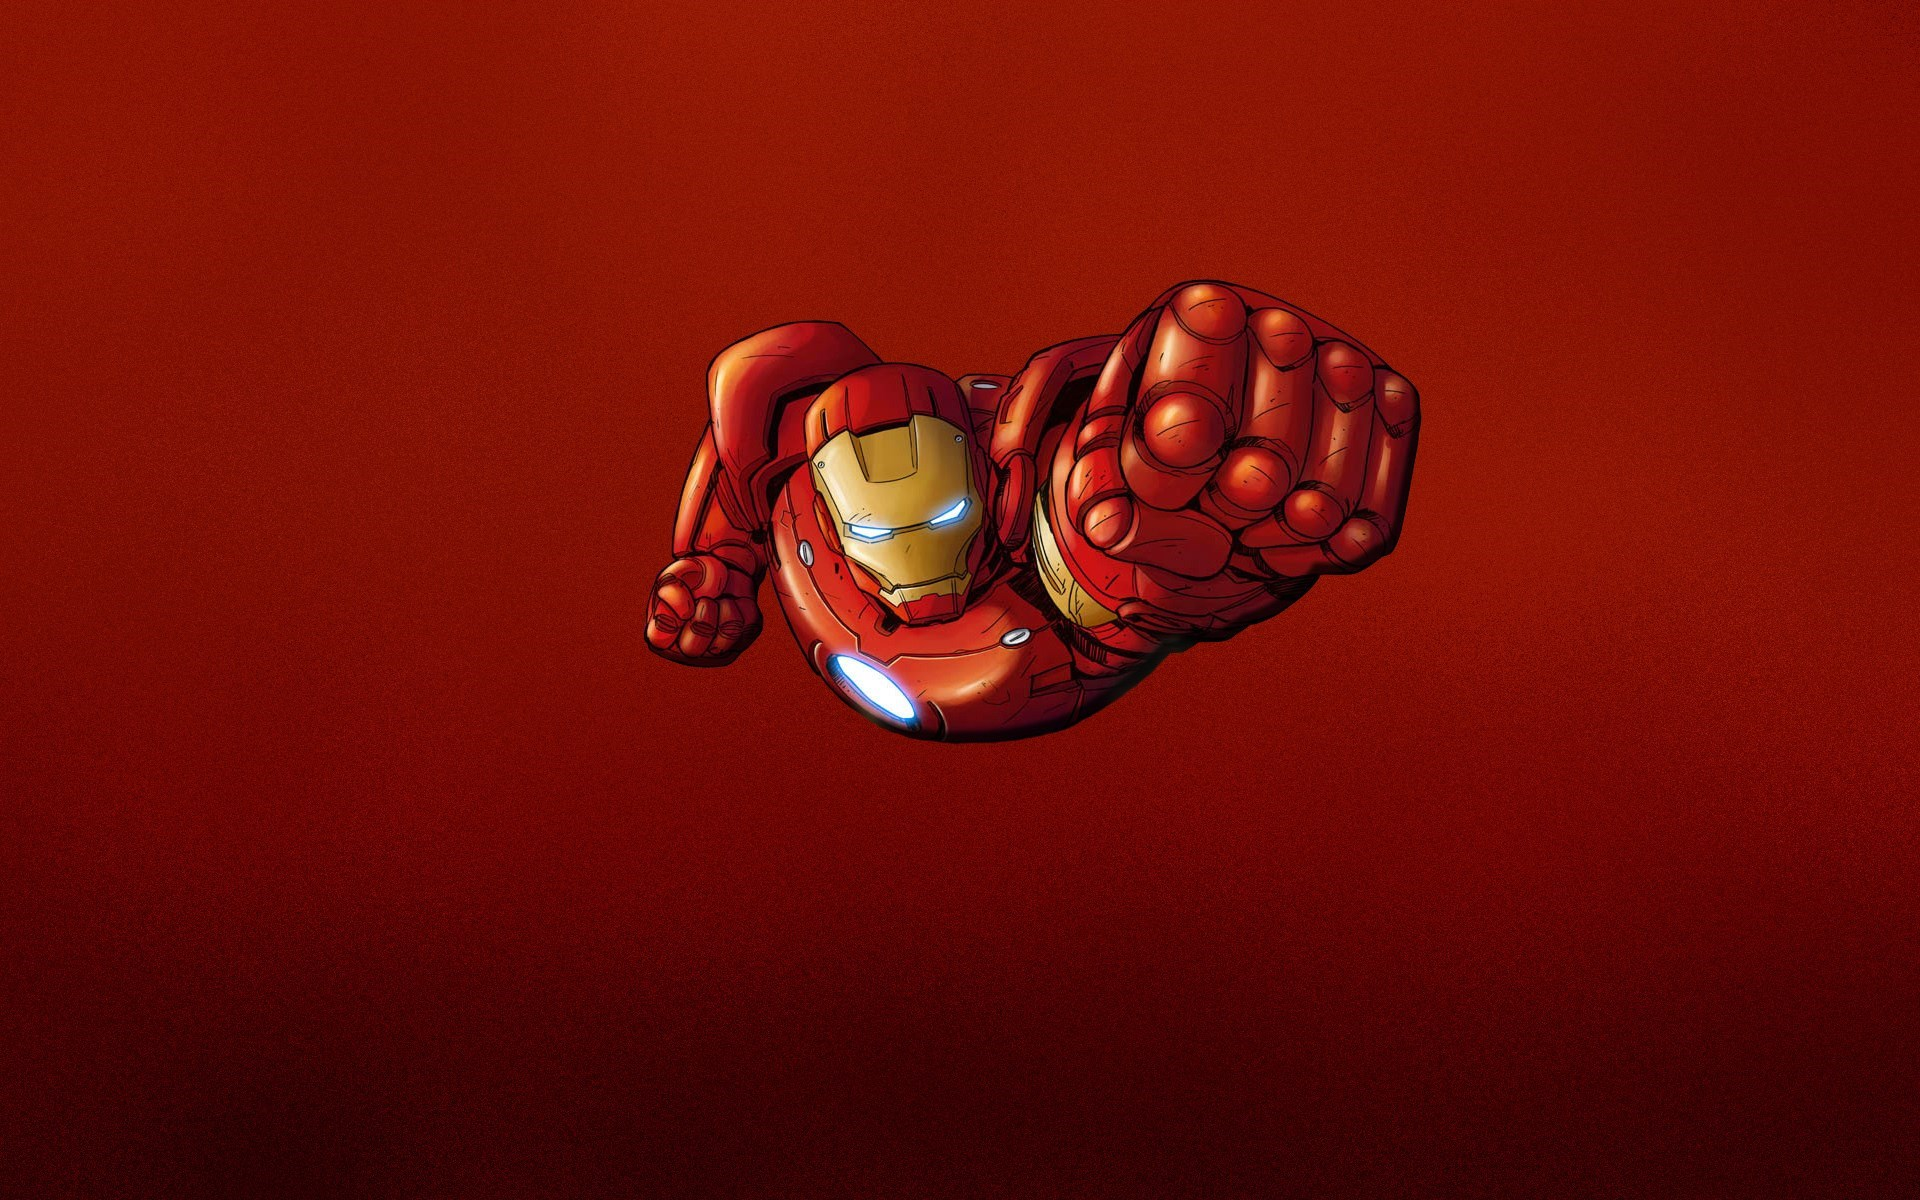 69 Iron Man Wallpapers For Download In HD 1920x1200